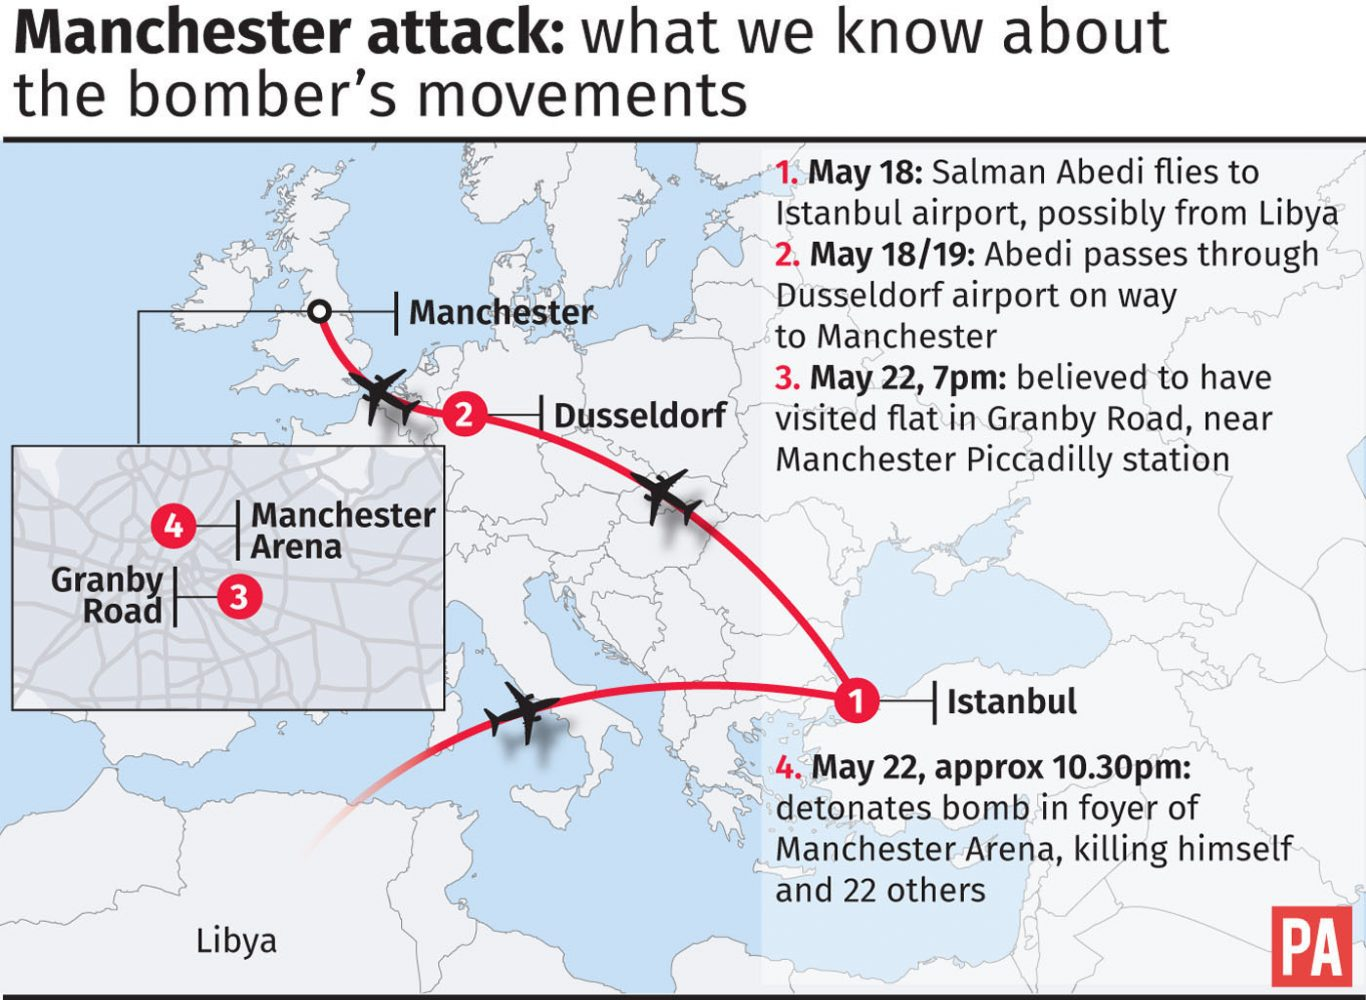 Eight suspects aged 18-38 being held in Manchester bomb probe